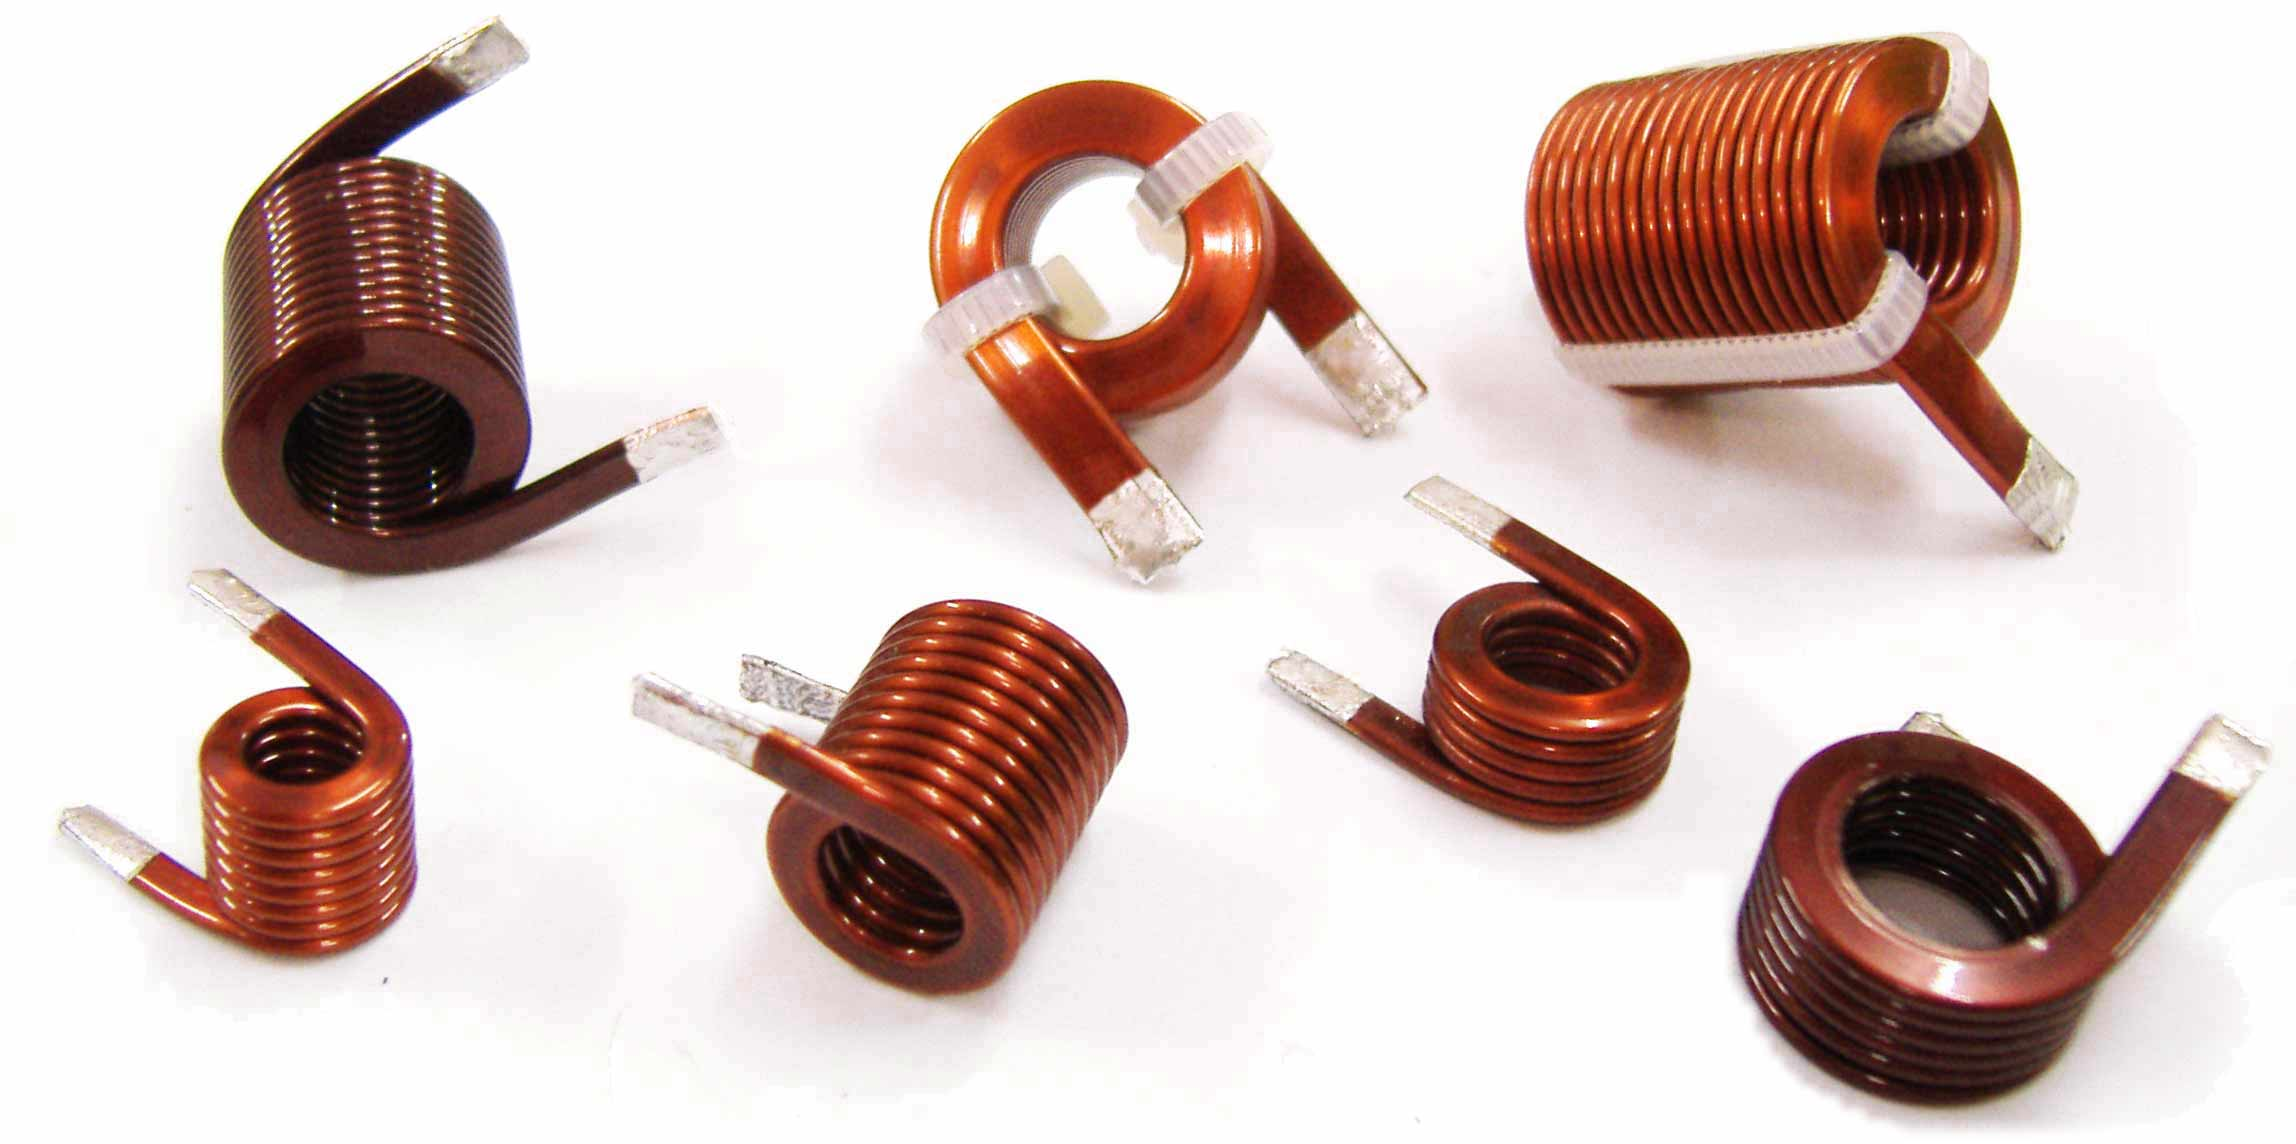 Helical coils, Flat coil windings